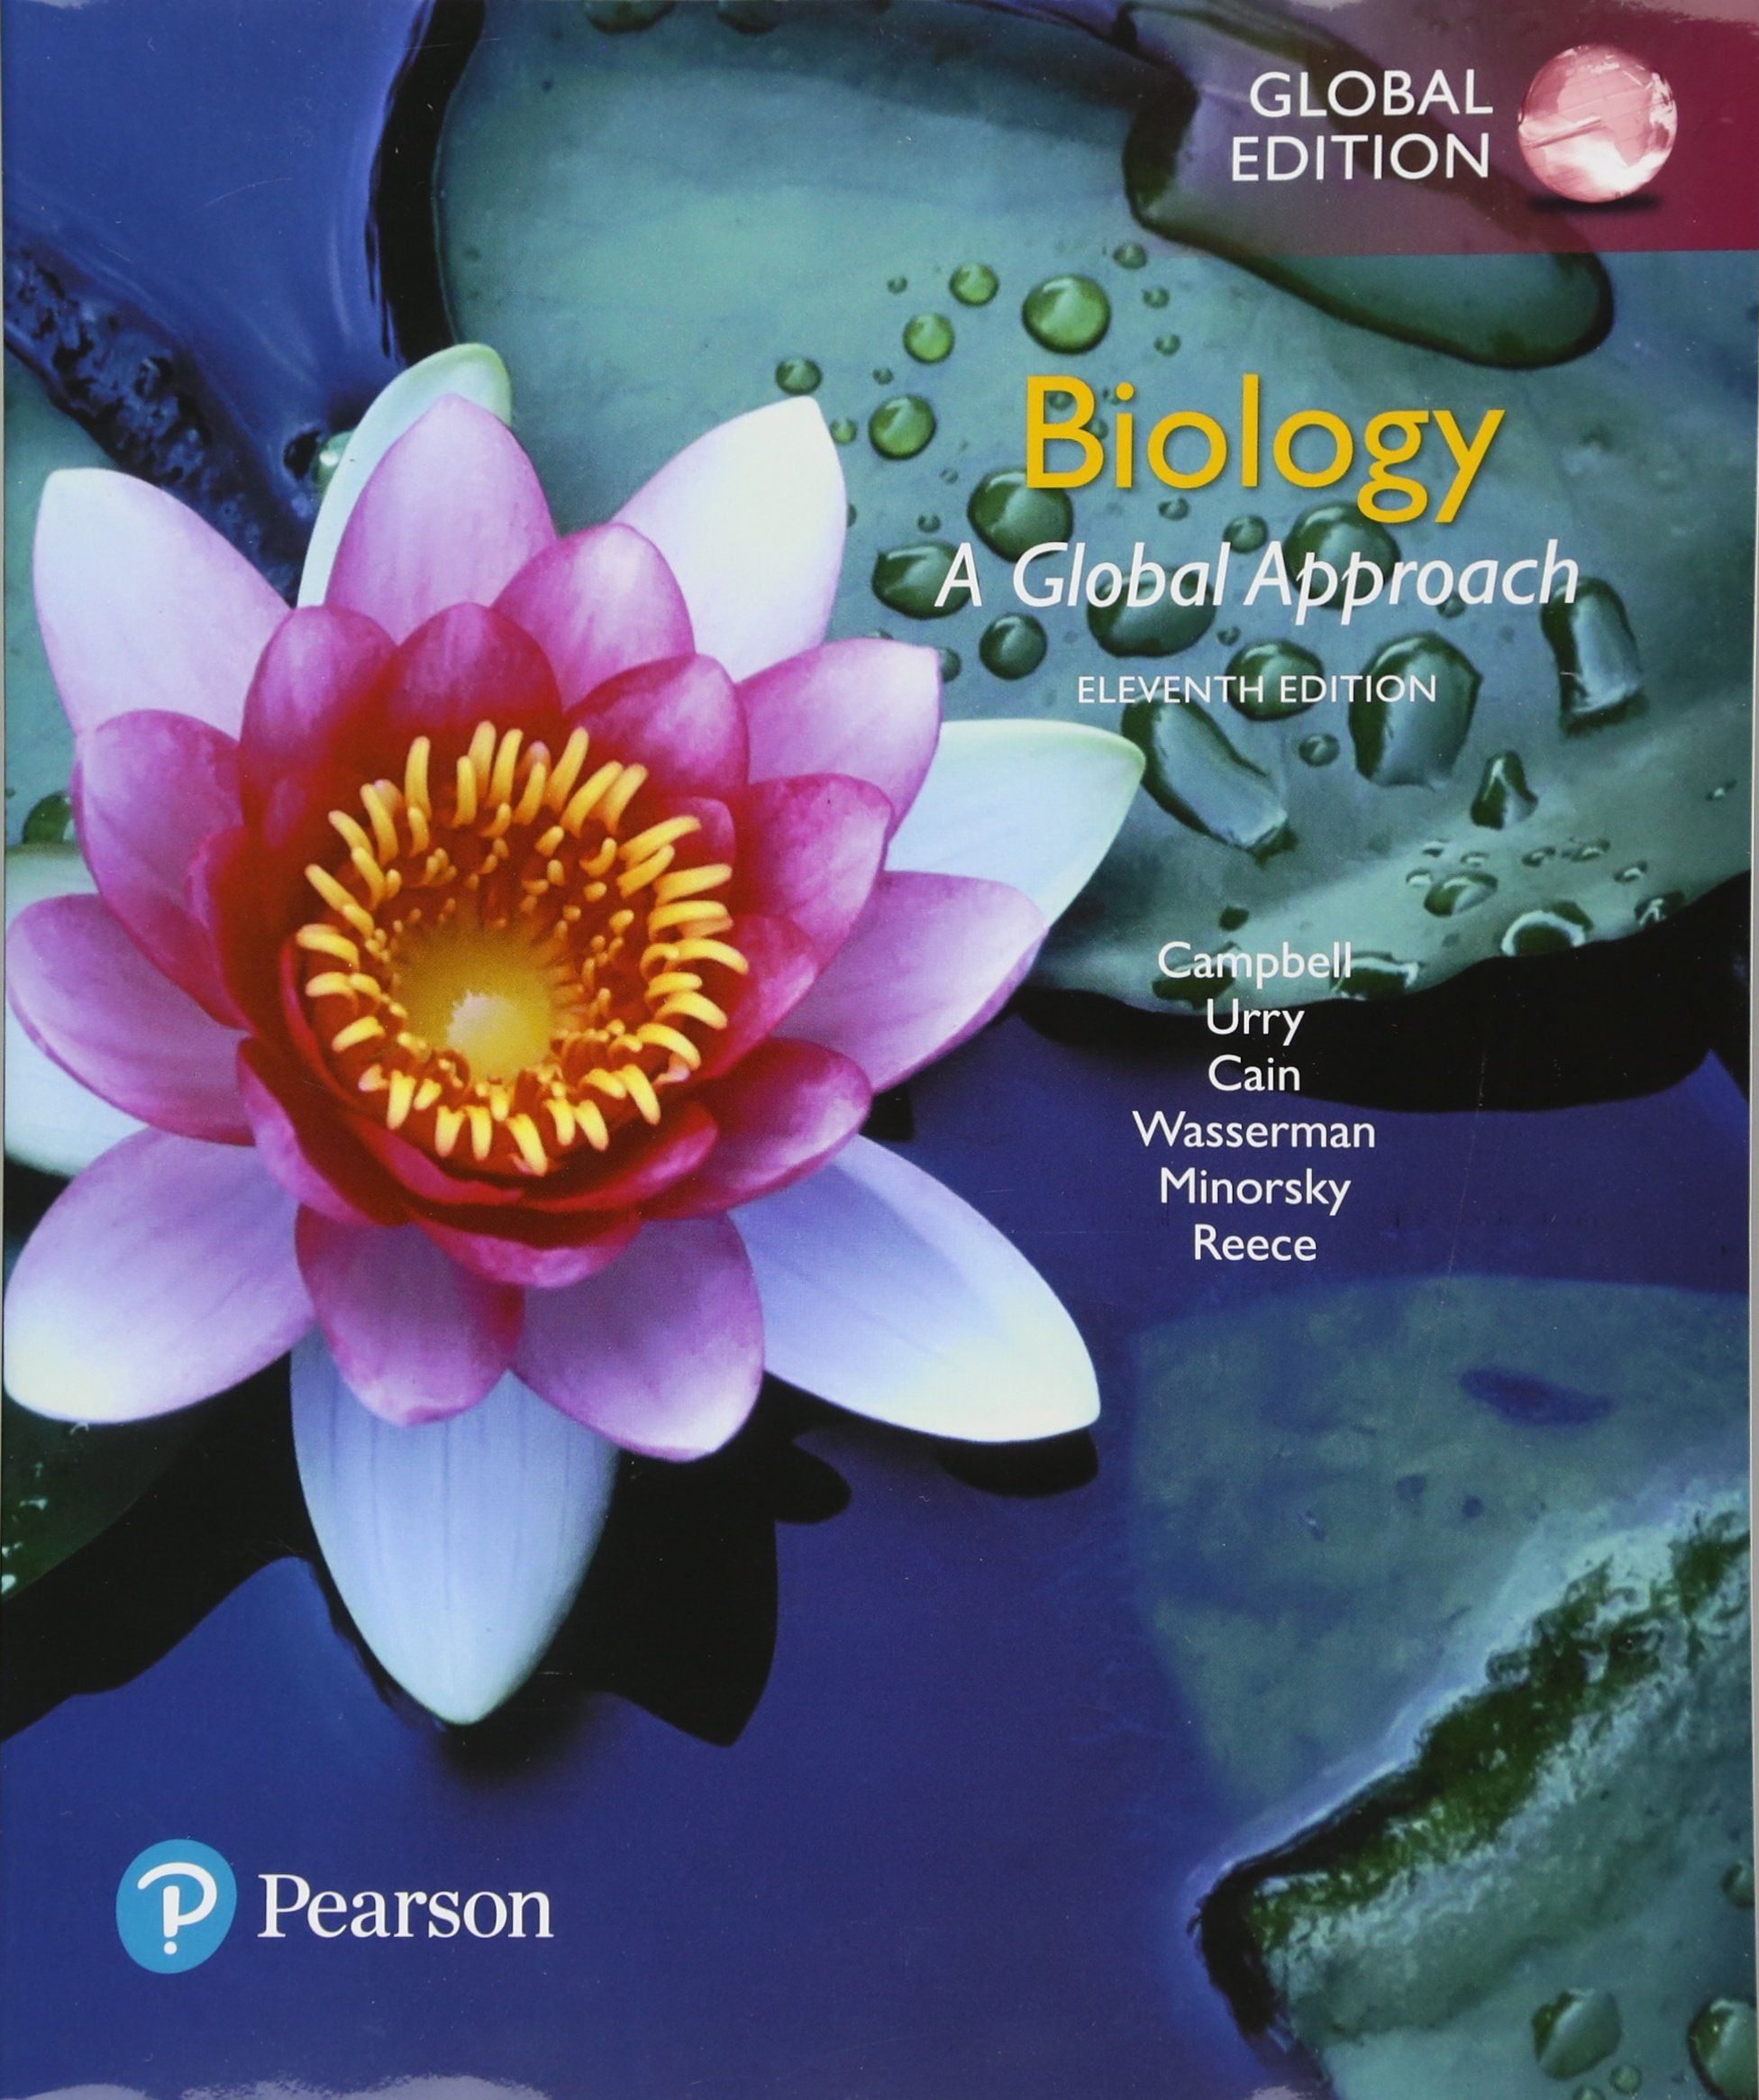 Biology A Global Approach 11th 11e Global Edition Campbell Biology Textbook Campbell Biology Biology